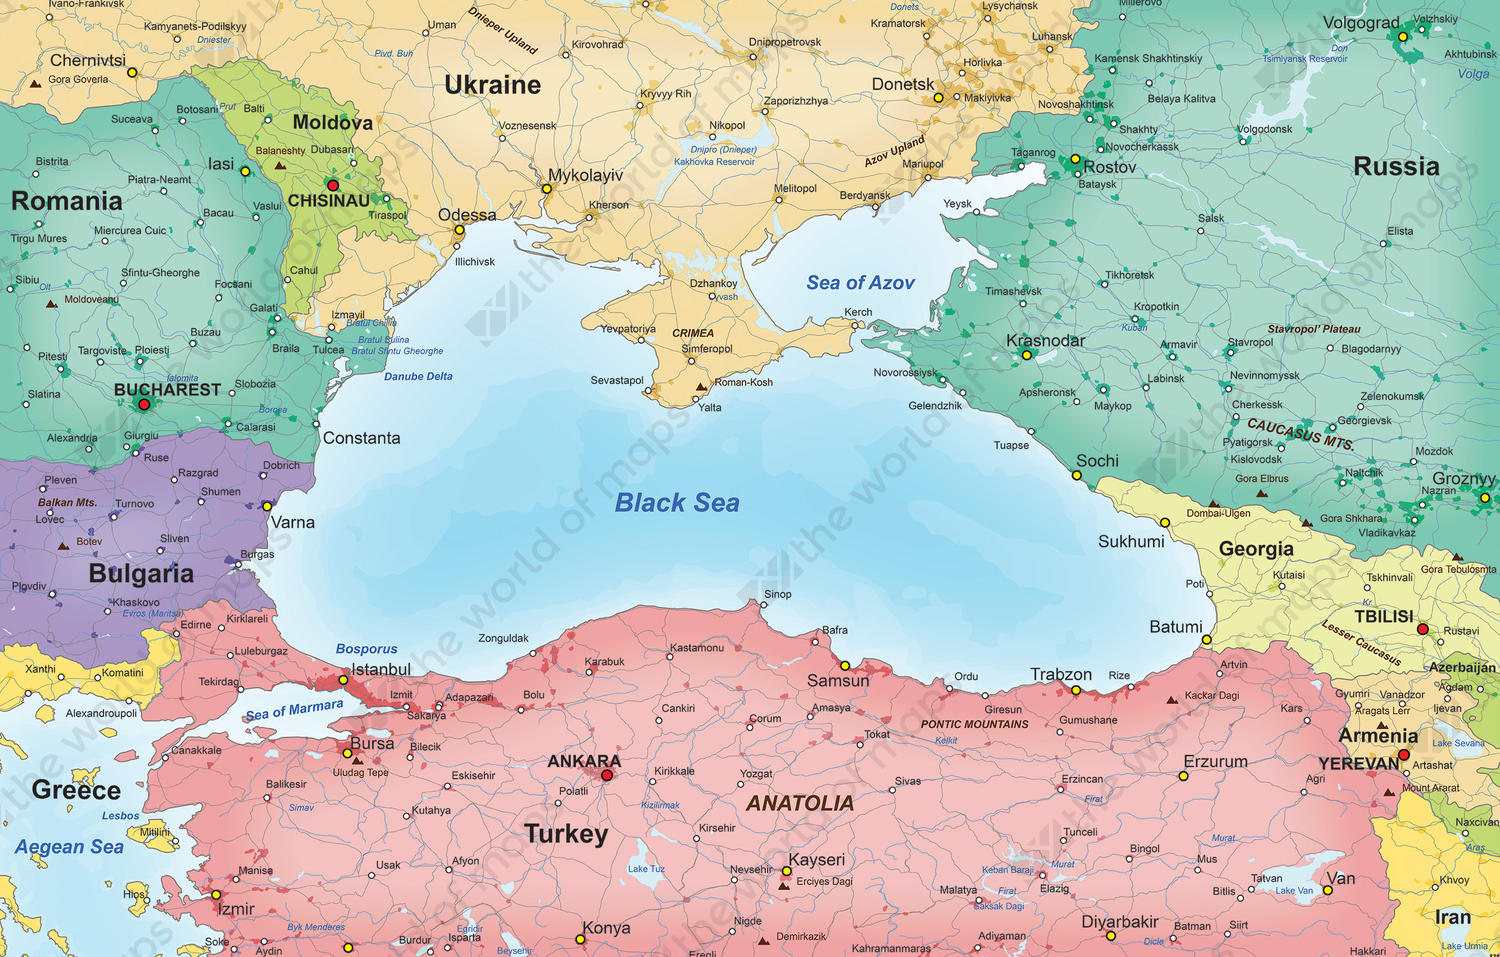 Black Sea Map Digital Map Countries around the Black Sea 838 | The World of Maps.com Black Sea Map